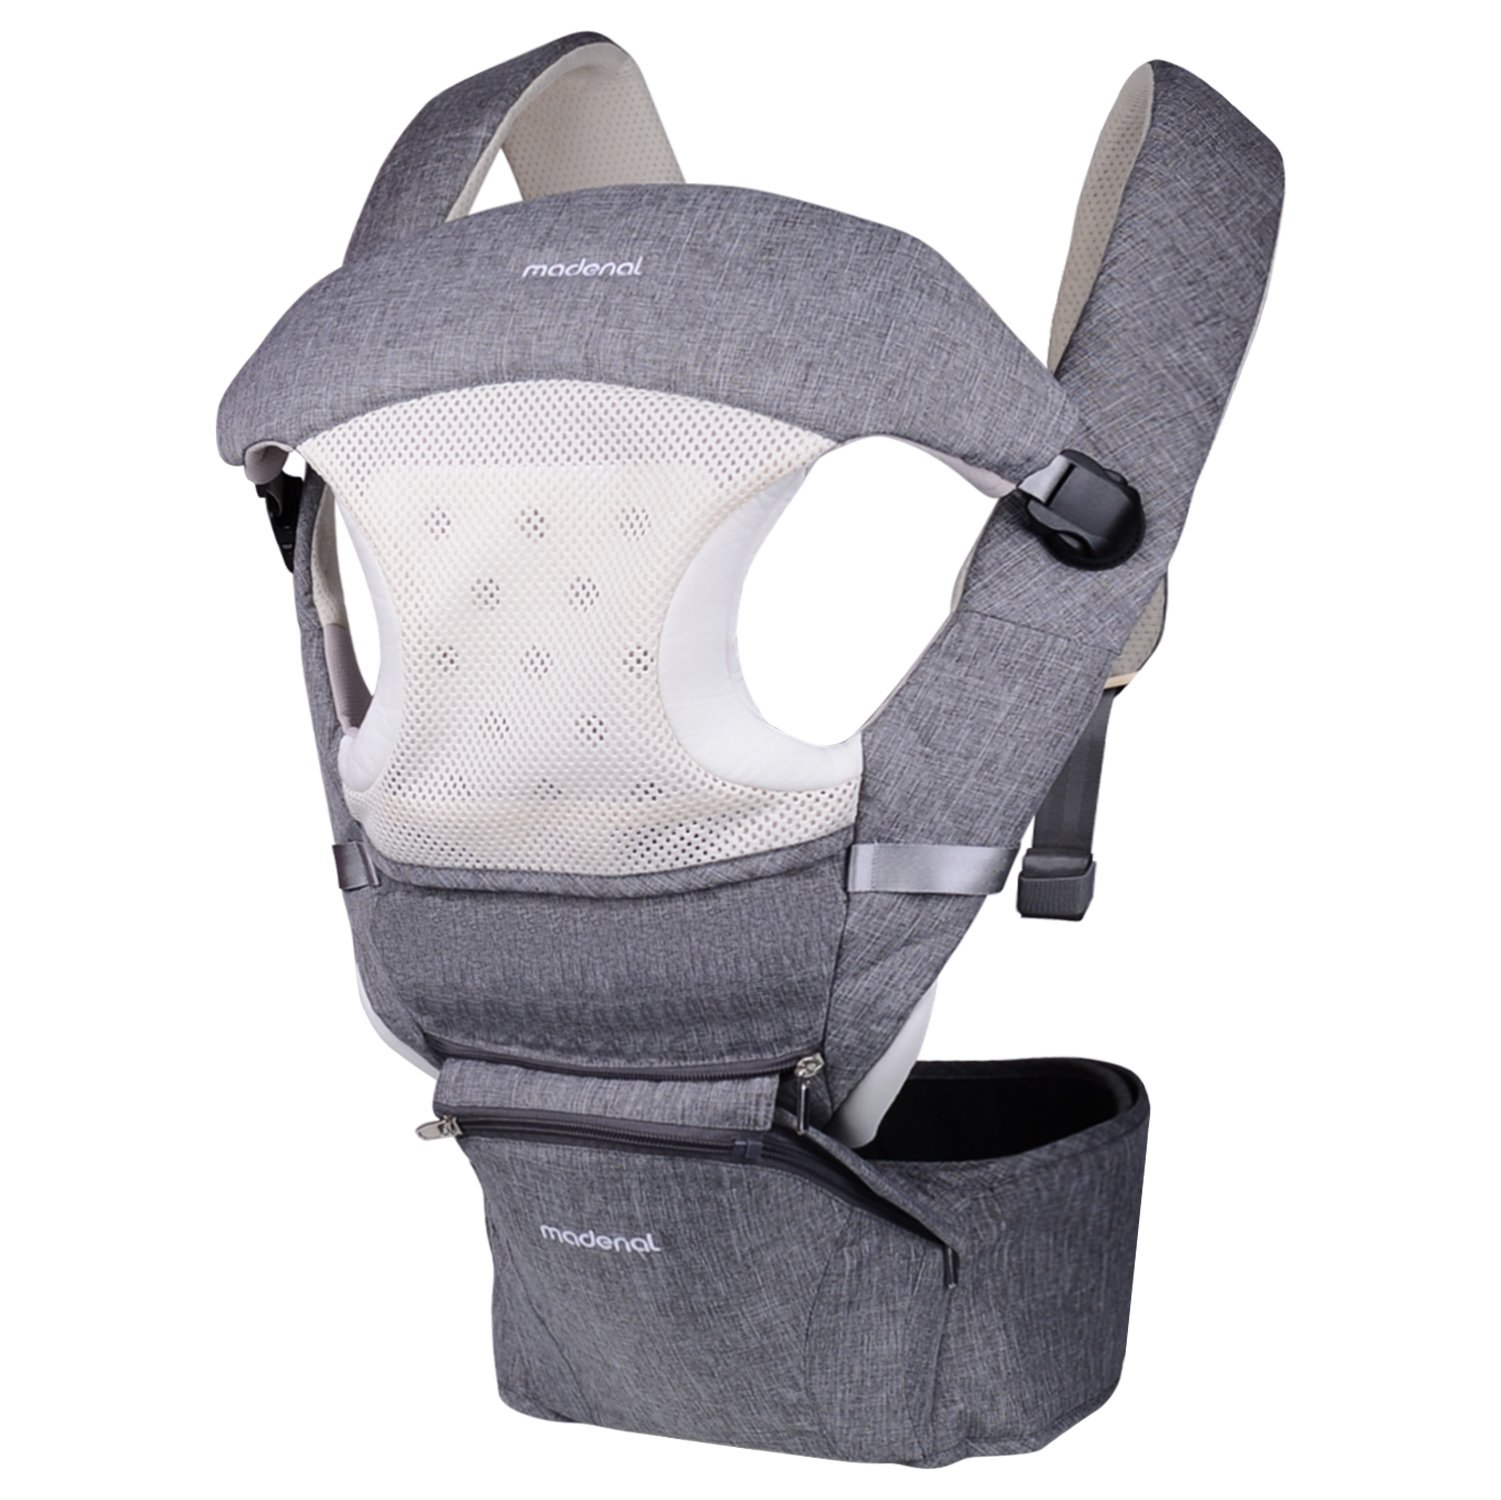 MADENAL 360º Ergonomic Baby Carrier with Hip Seat, 10 Positions For All Seasons, Adjustable Normal to Oversize (S - XXXL), Breathable Waistband and Effortless - Gray